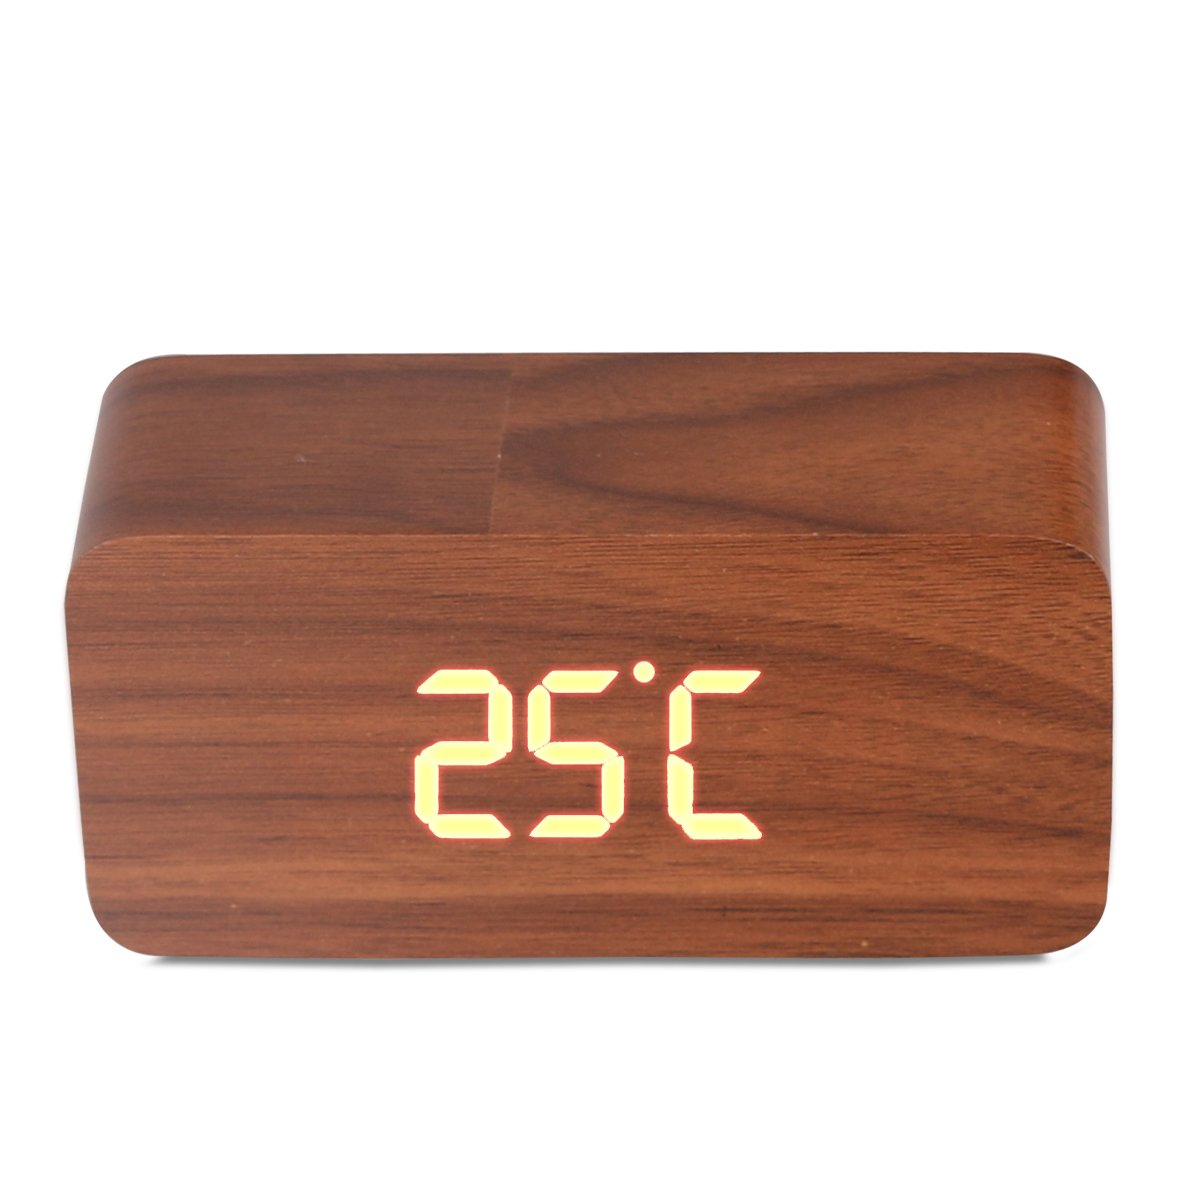 Amazon.com: Wood Cuboid Digital Clock Alarm Thermometer Temperature Function Clap On Sound Control Clock (Brown case): Home & Kitchen